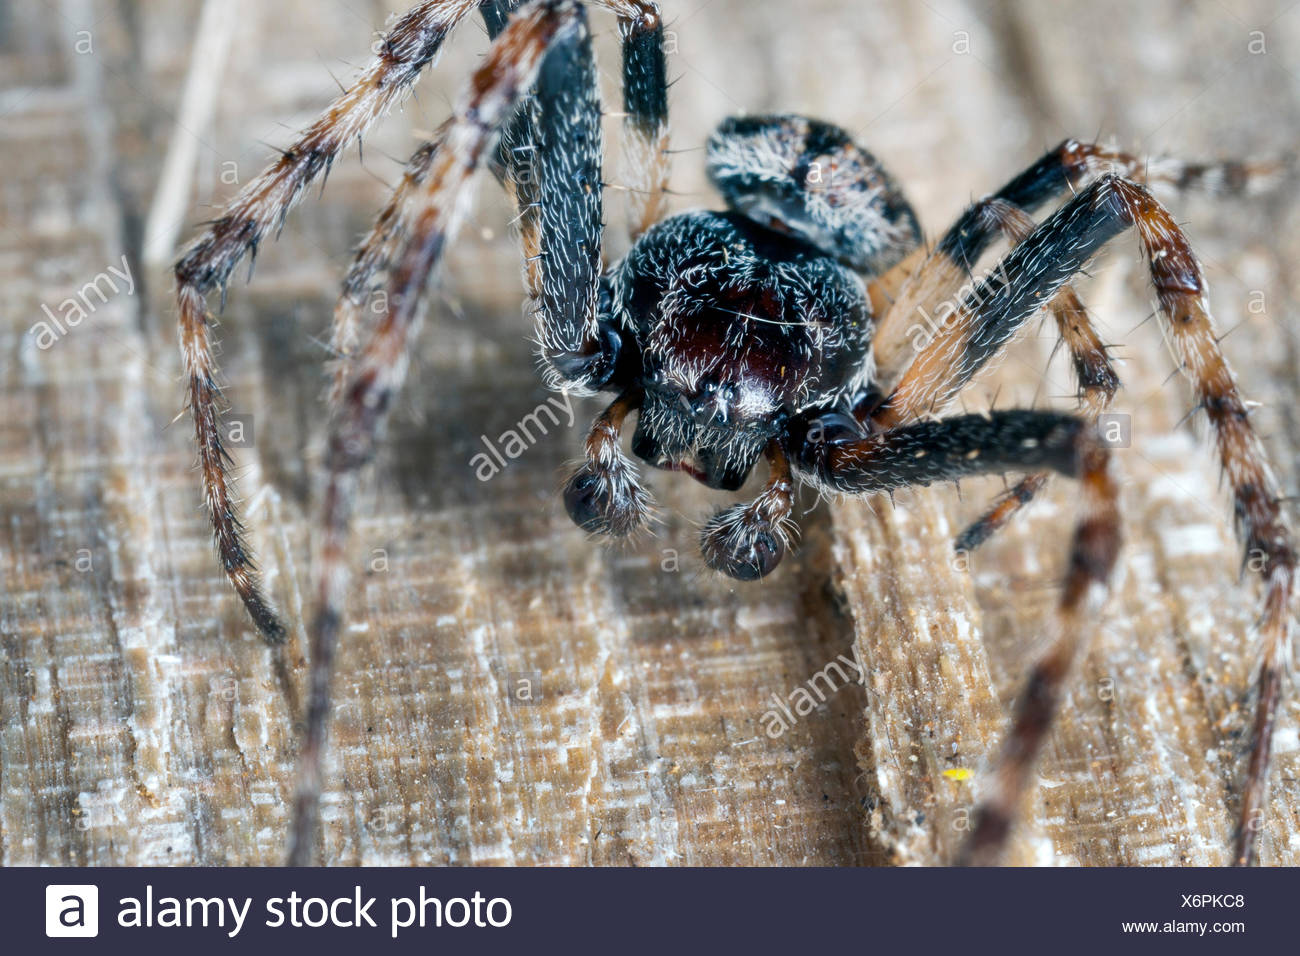 Crevice spider, Walnut Orb-Weaver Spider, walnut orb weaver spider, Walnut Orb Weaver (Araneus umbraticus, Nuctenea umbratica), male, Germany - Stock Image